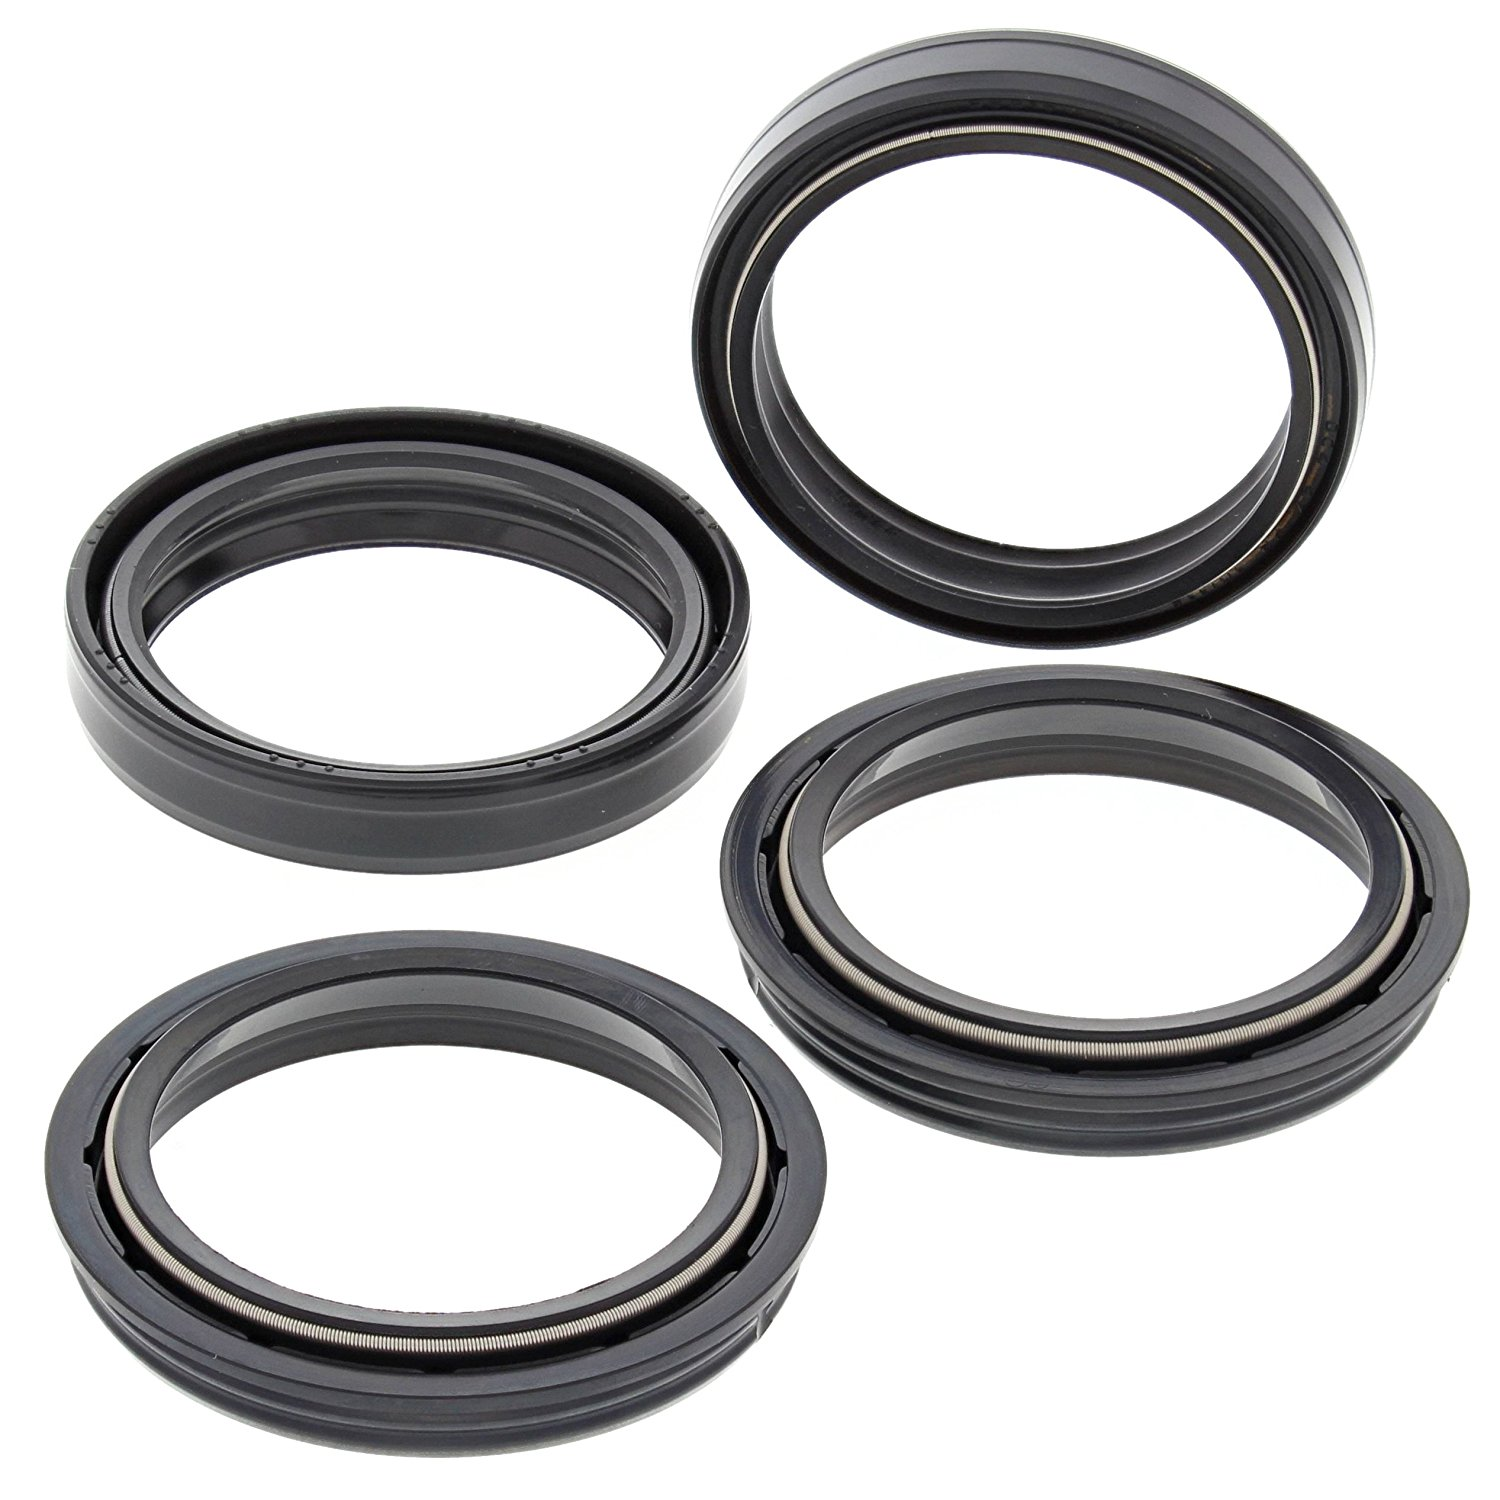 Fork Oil /& Dust Wiper Seal Set For YAMAHA YZ400F 1998-1999// YZ250 1996-2003